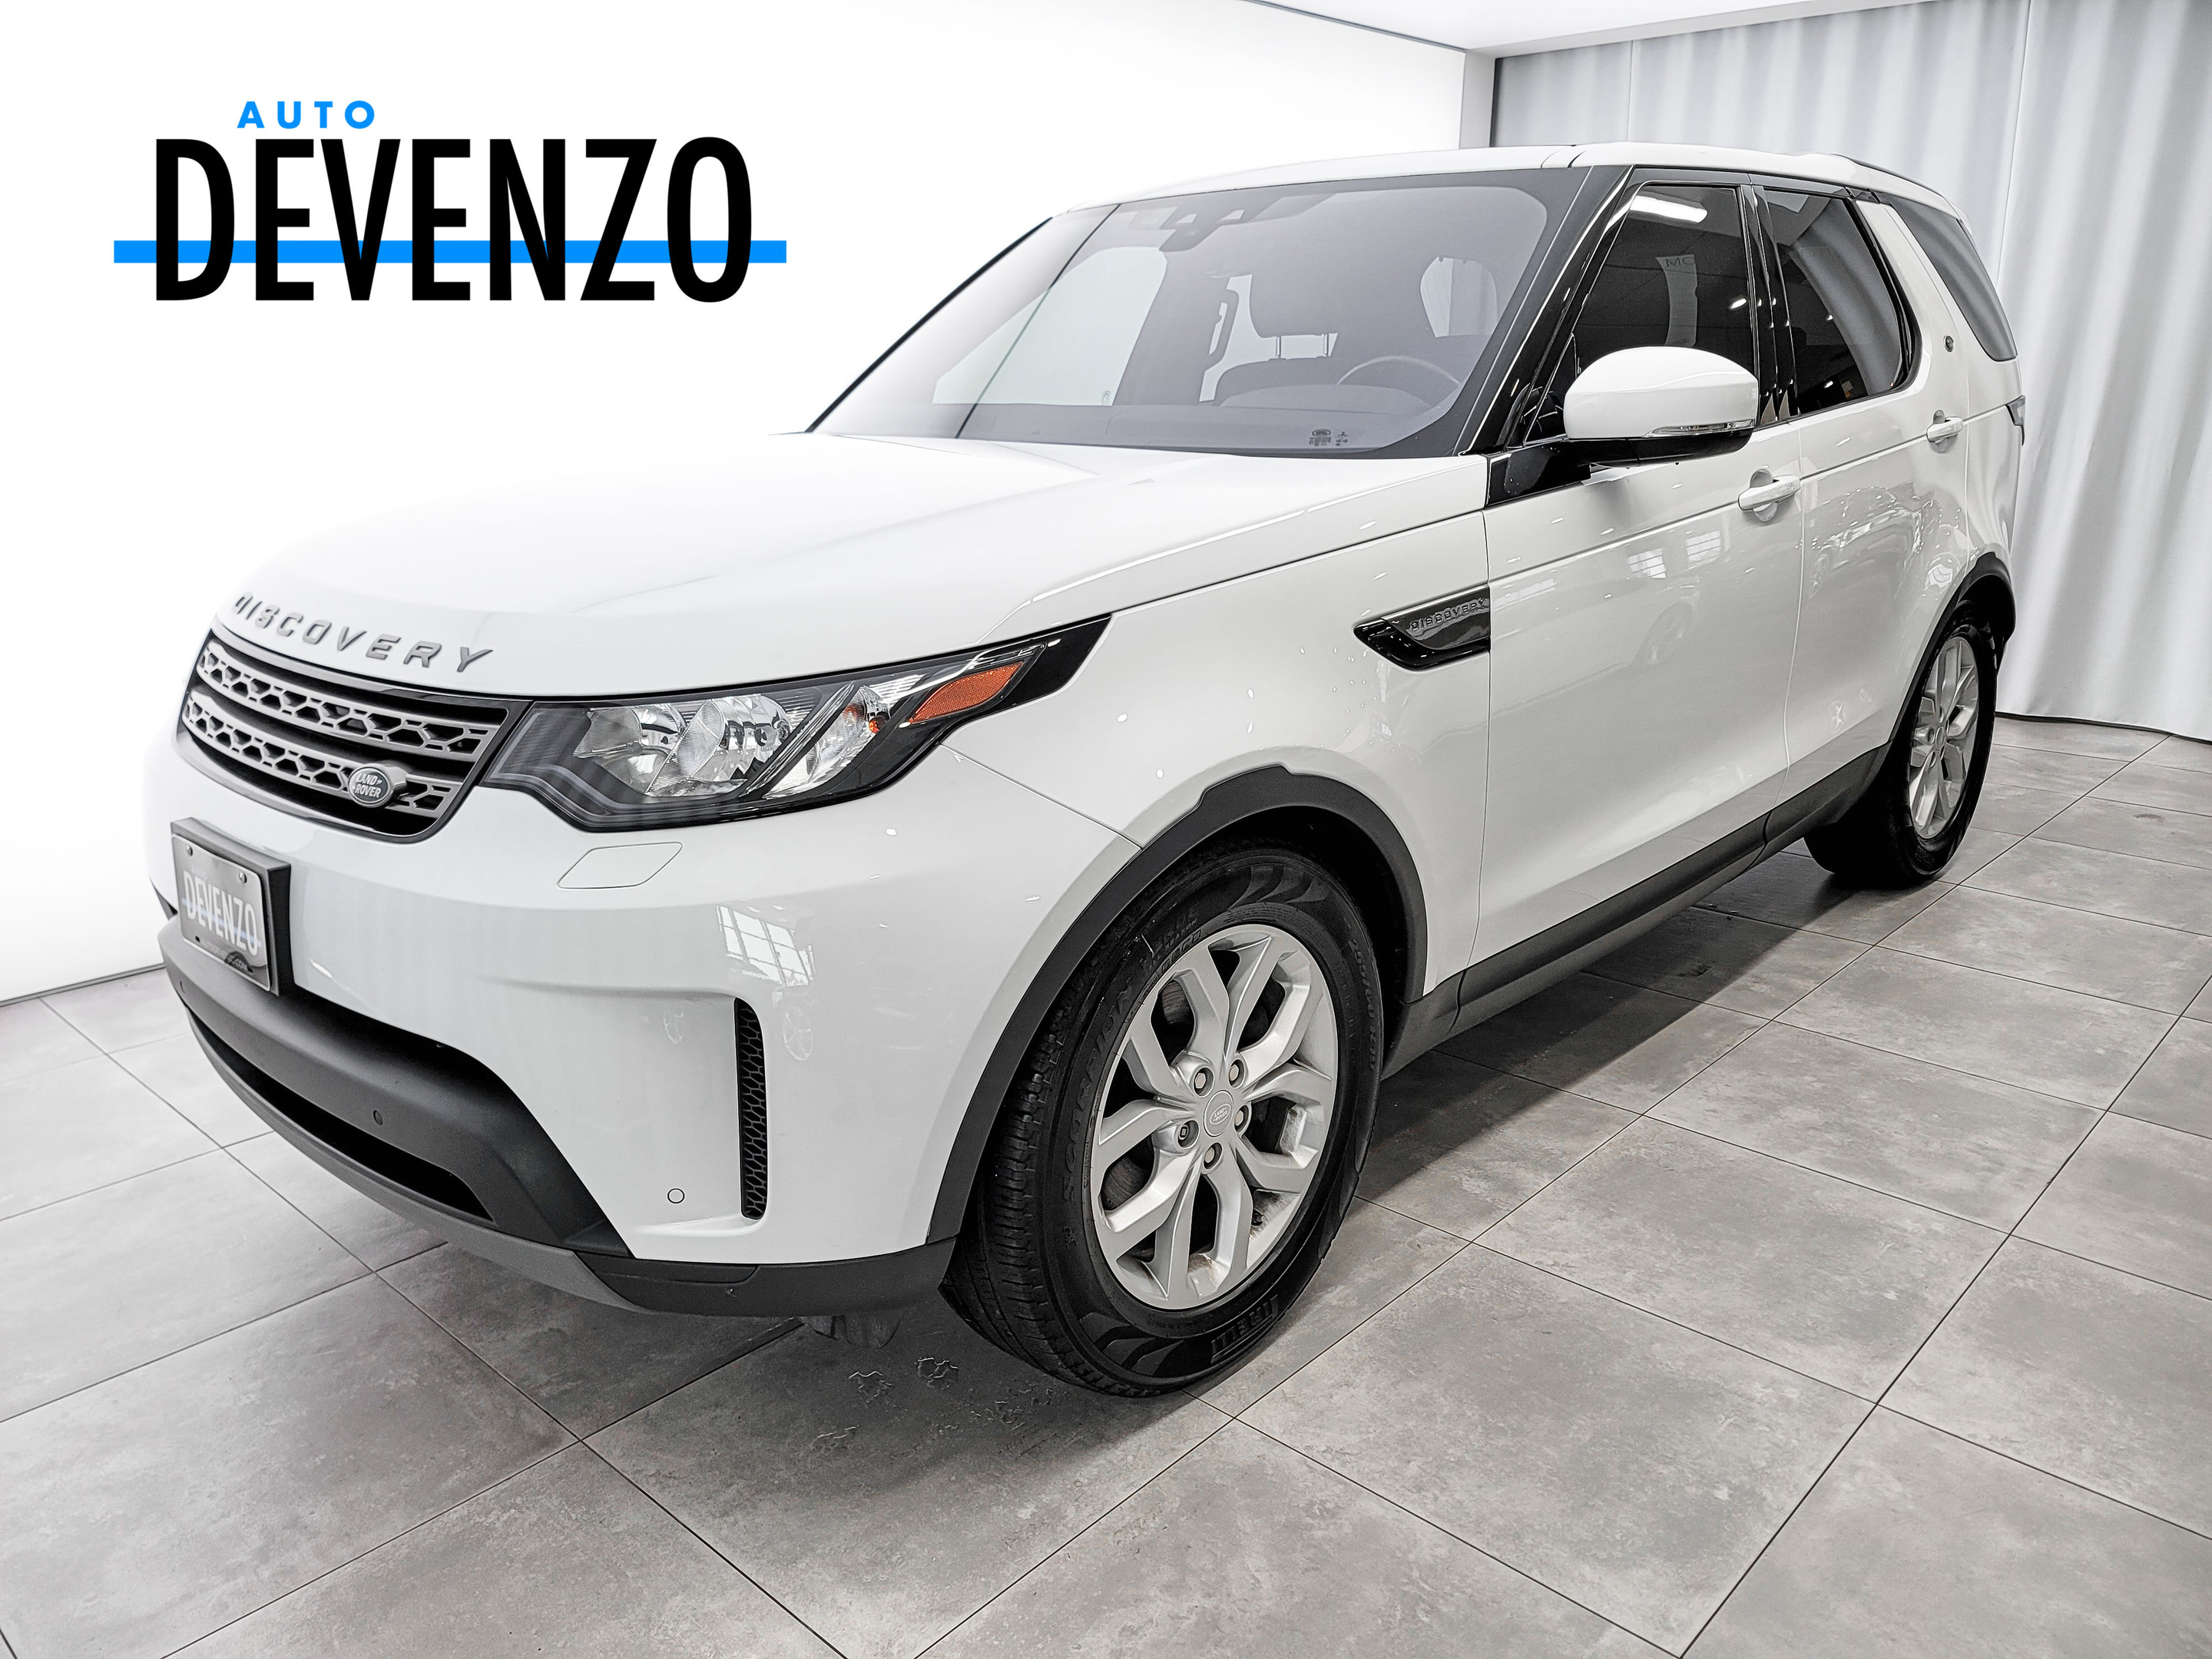 2018 Land Rover Discovery SE Td6 Diesel 4WD 7 passenger Panoroof Navi Camera complet